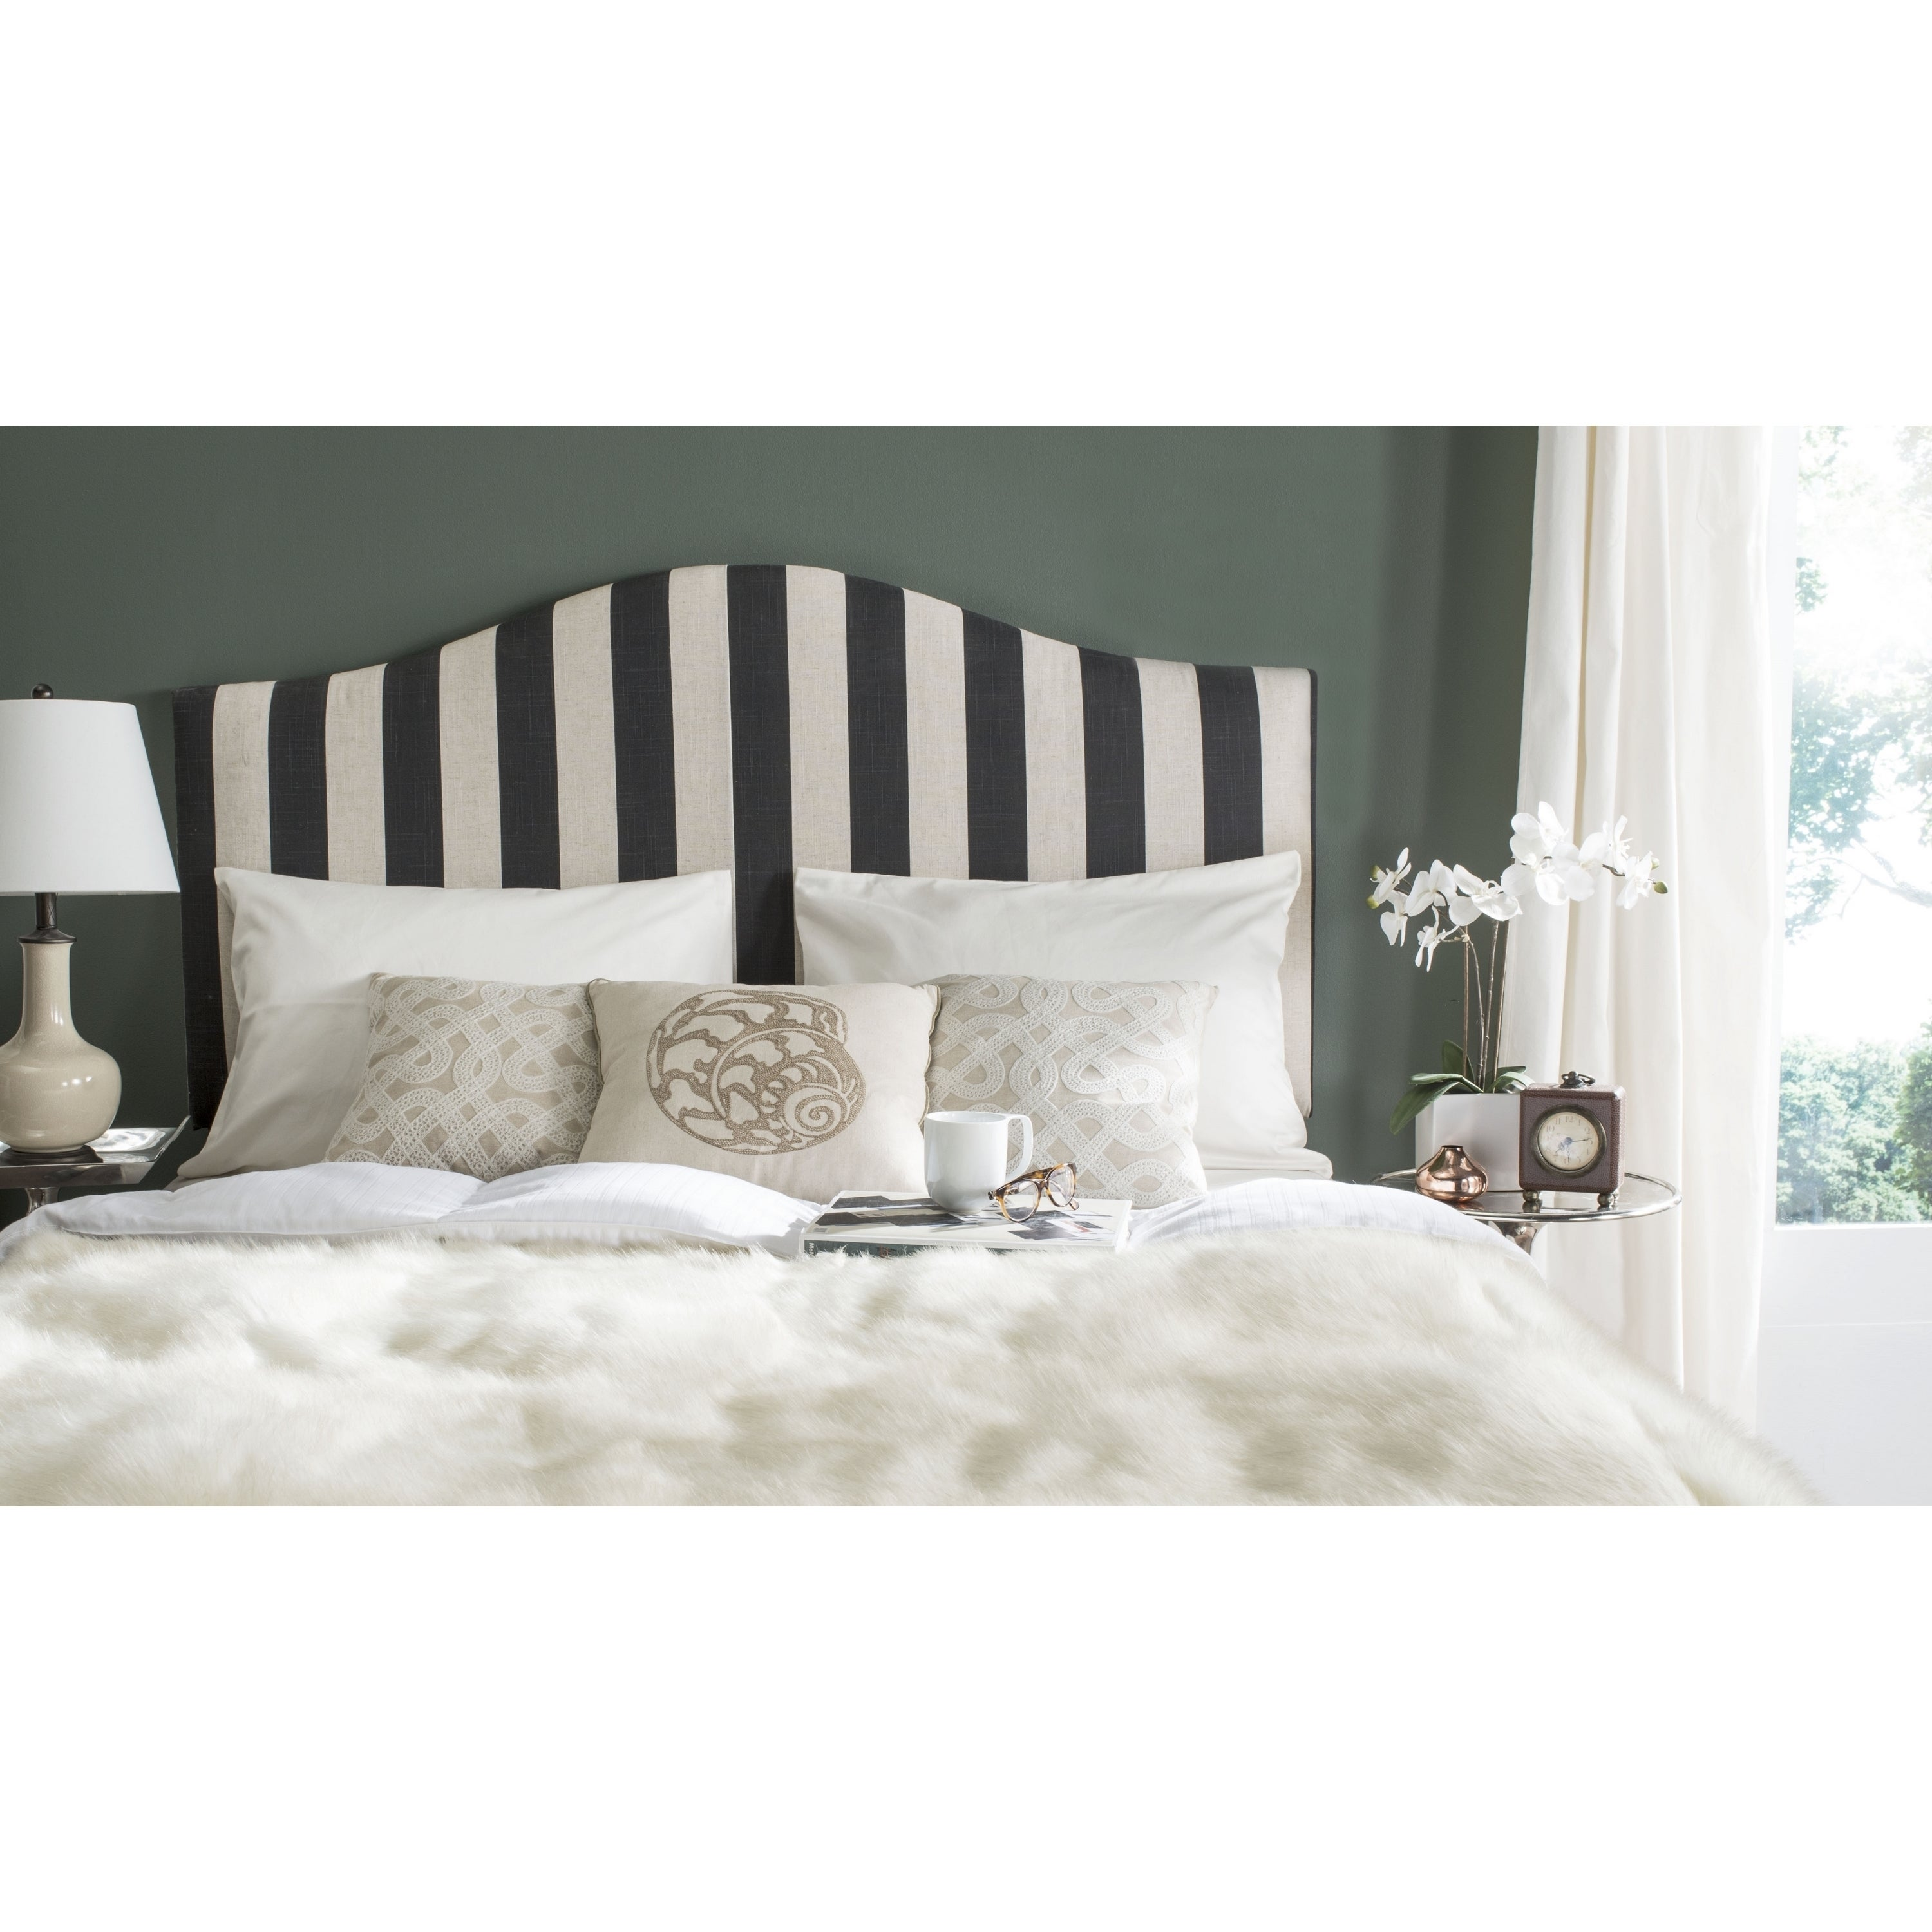 tufted striped design copper target headboard headboards fabric size white full ideas bed designs of modern bedroom shade light king abstract mens and black bedrooms sofa headb octagonal pendant